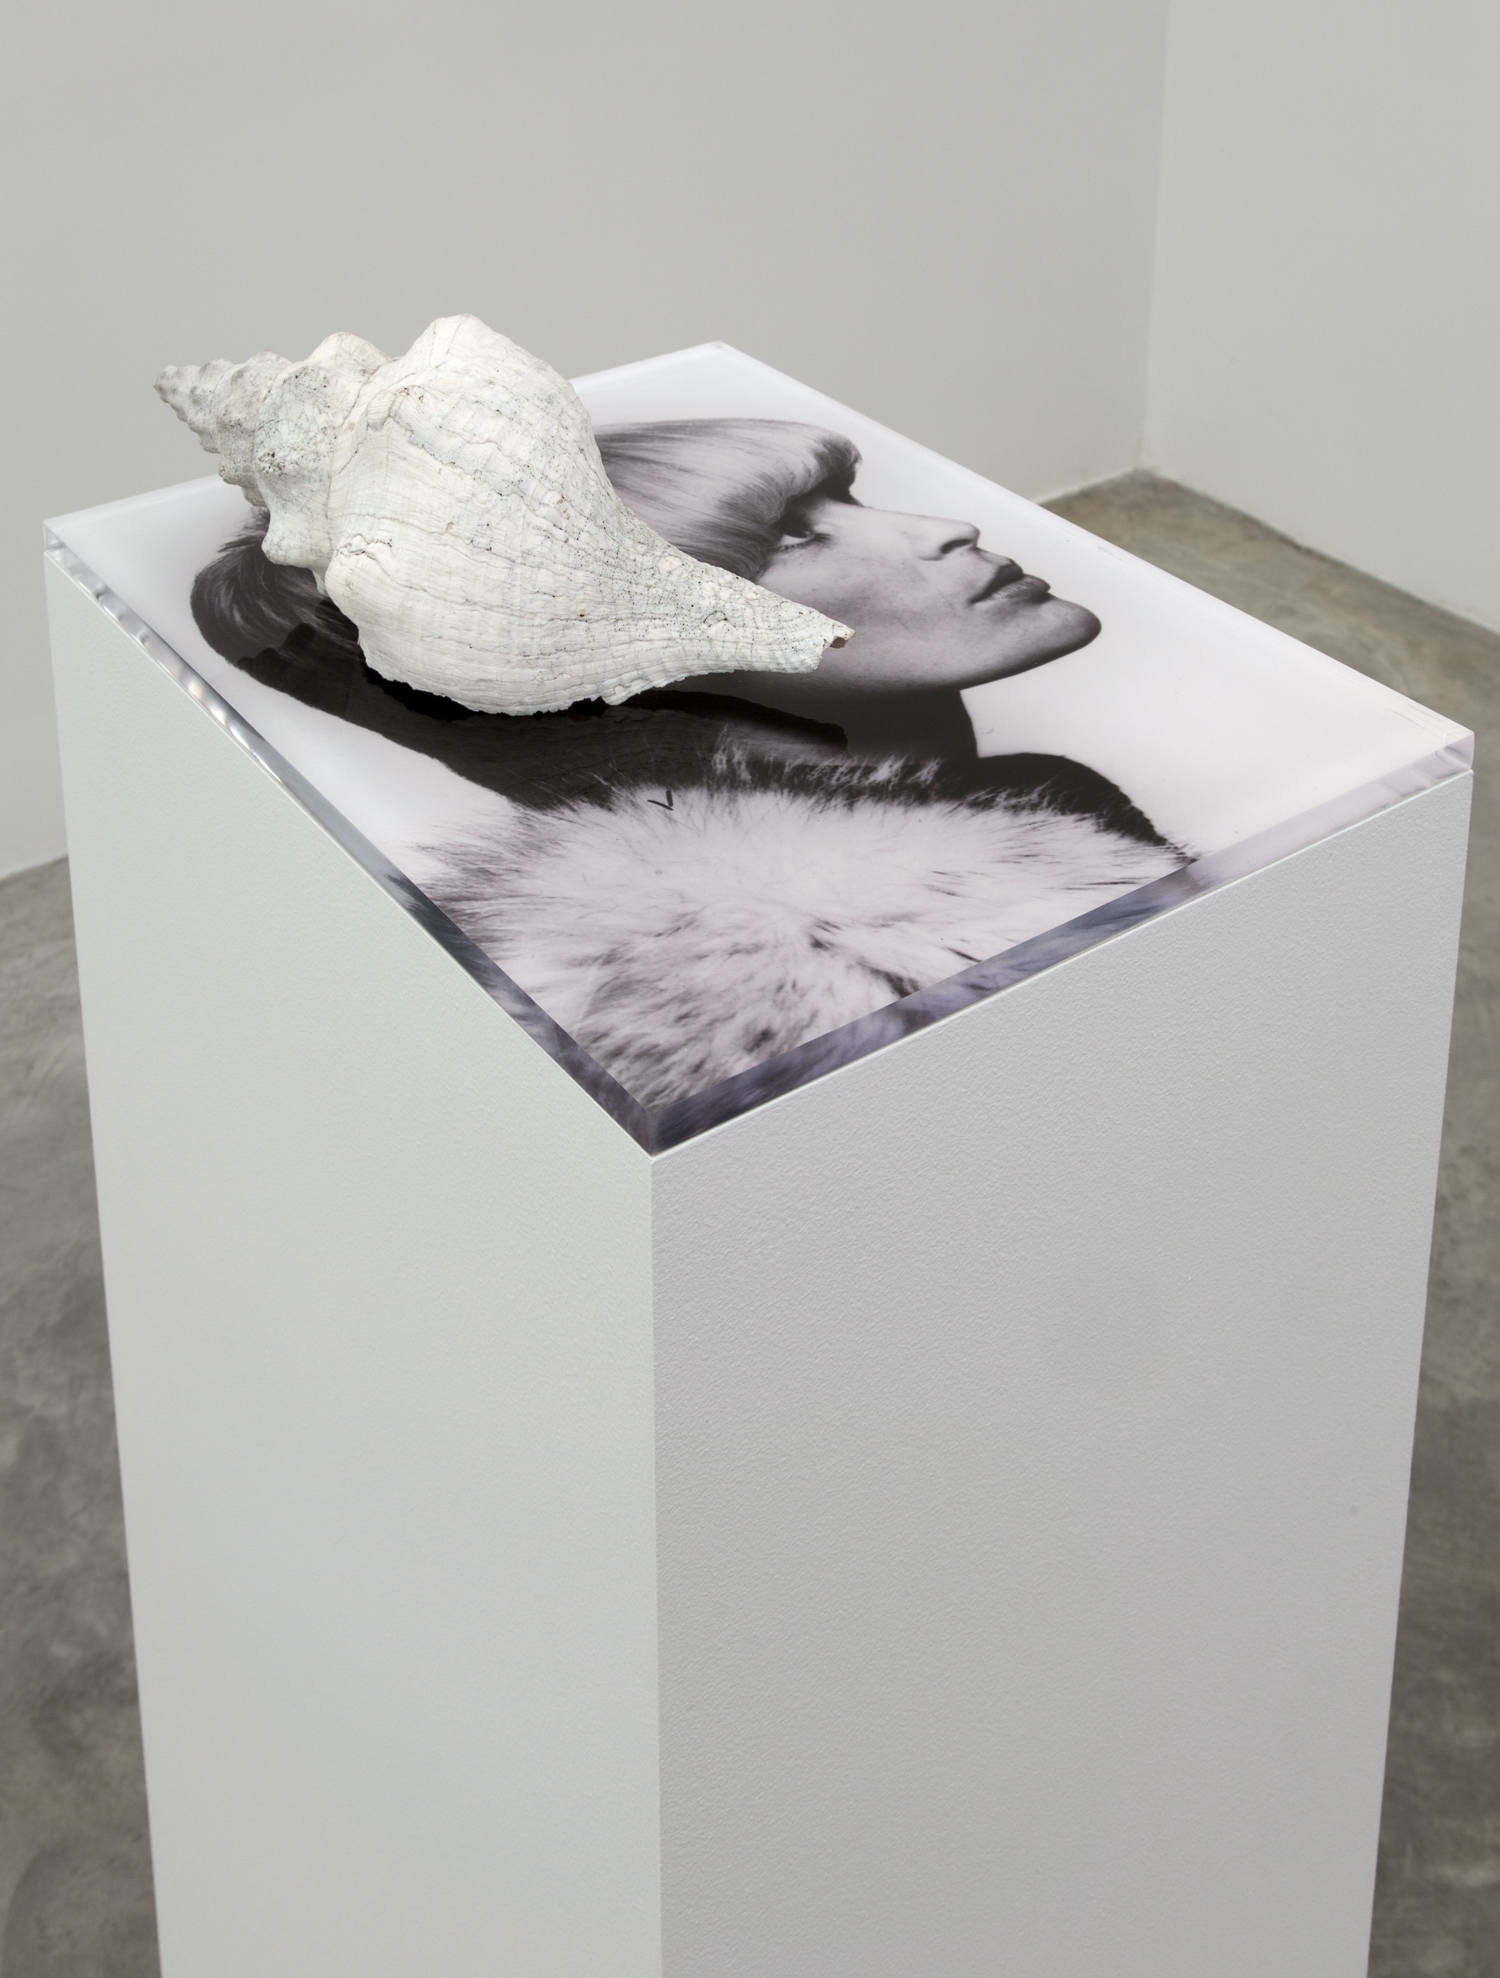 Marlo Pascual, Untitled, 2013. Digital c-print, conch shell, pedestal, Installed dimensions: 40½ x 16 x 12 inches. Photo by Jean Vong. Courtesy of the artist and Casey Kaplan, New York